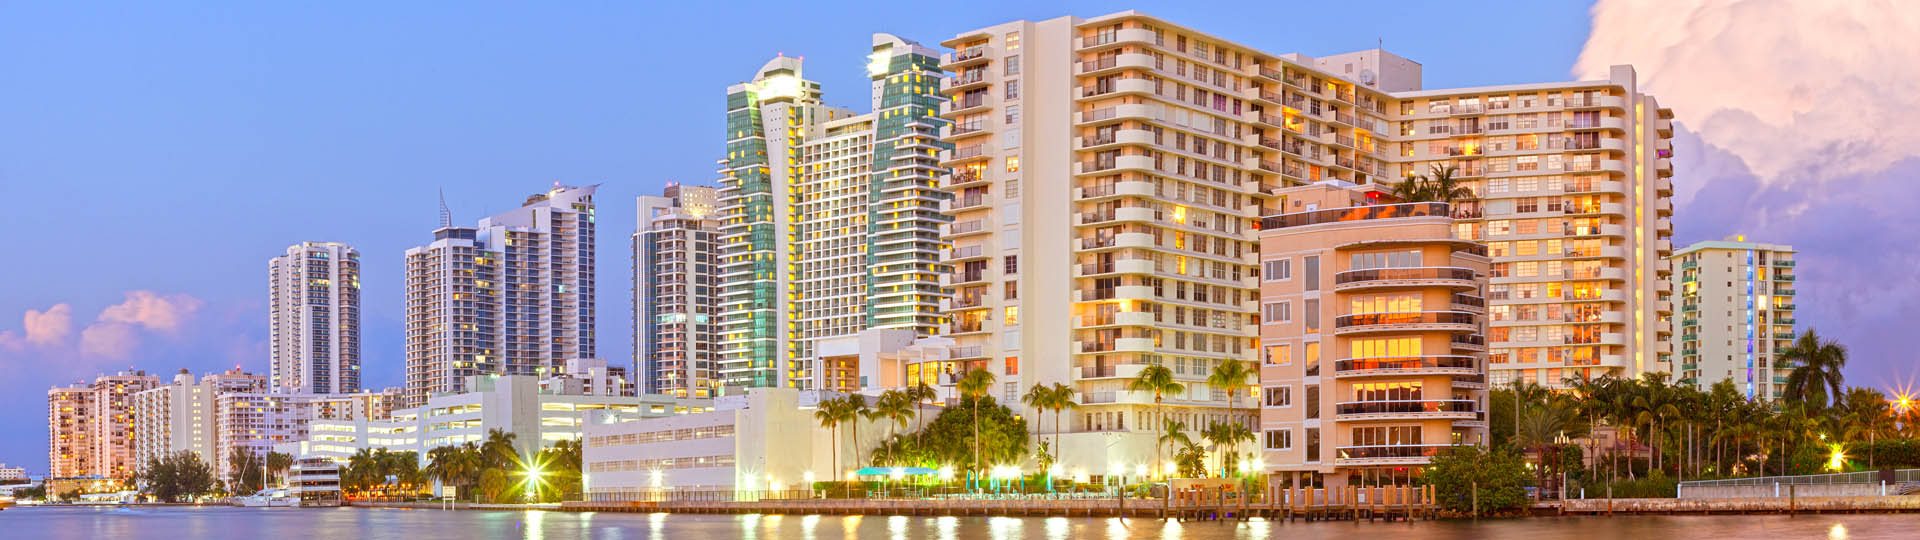 Investors In Hollywood, Florida